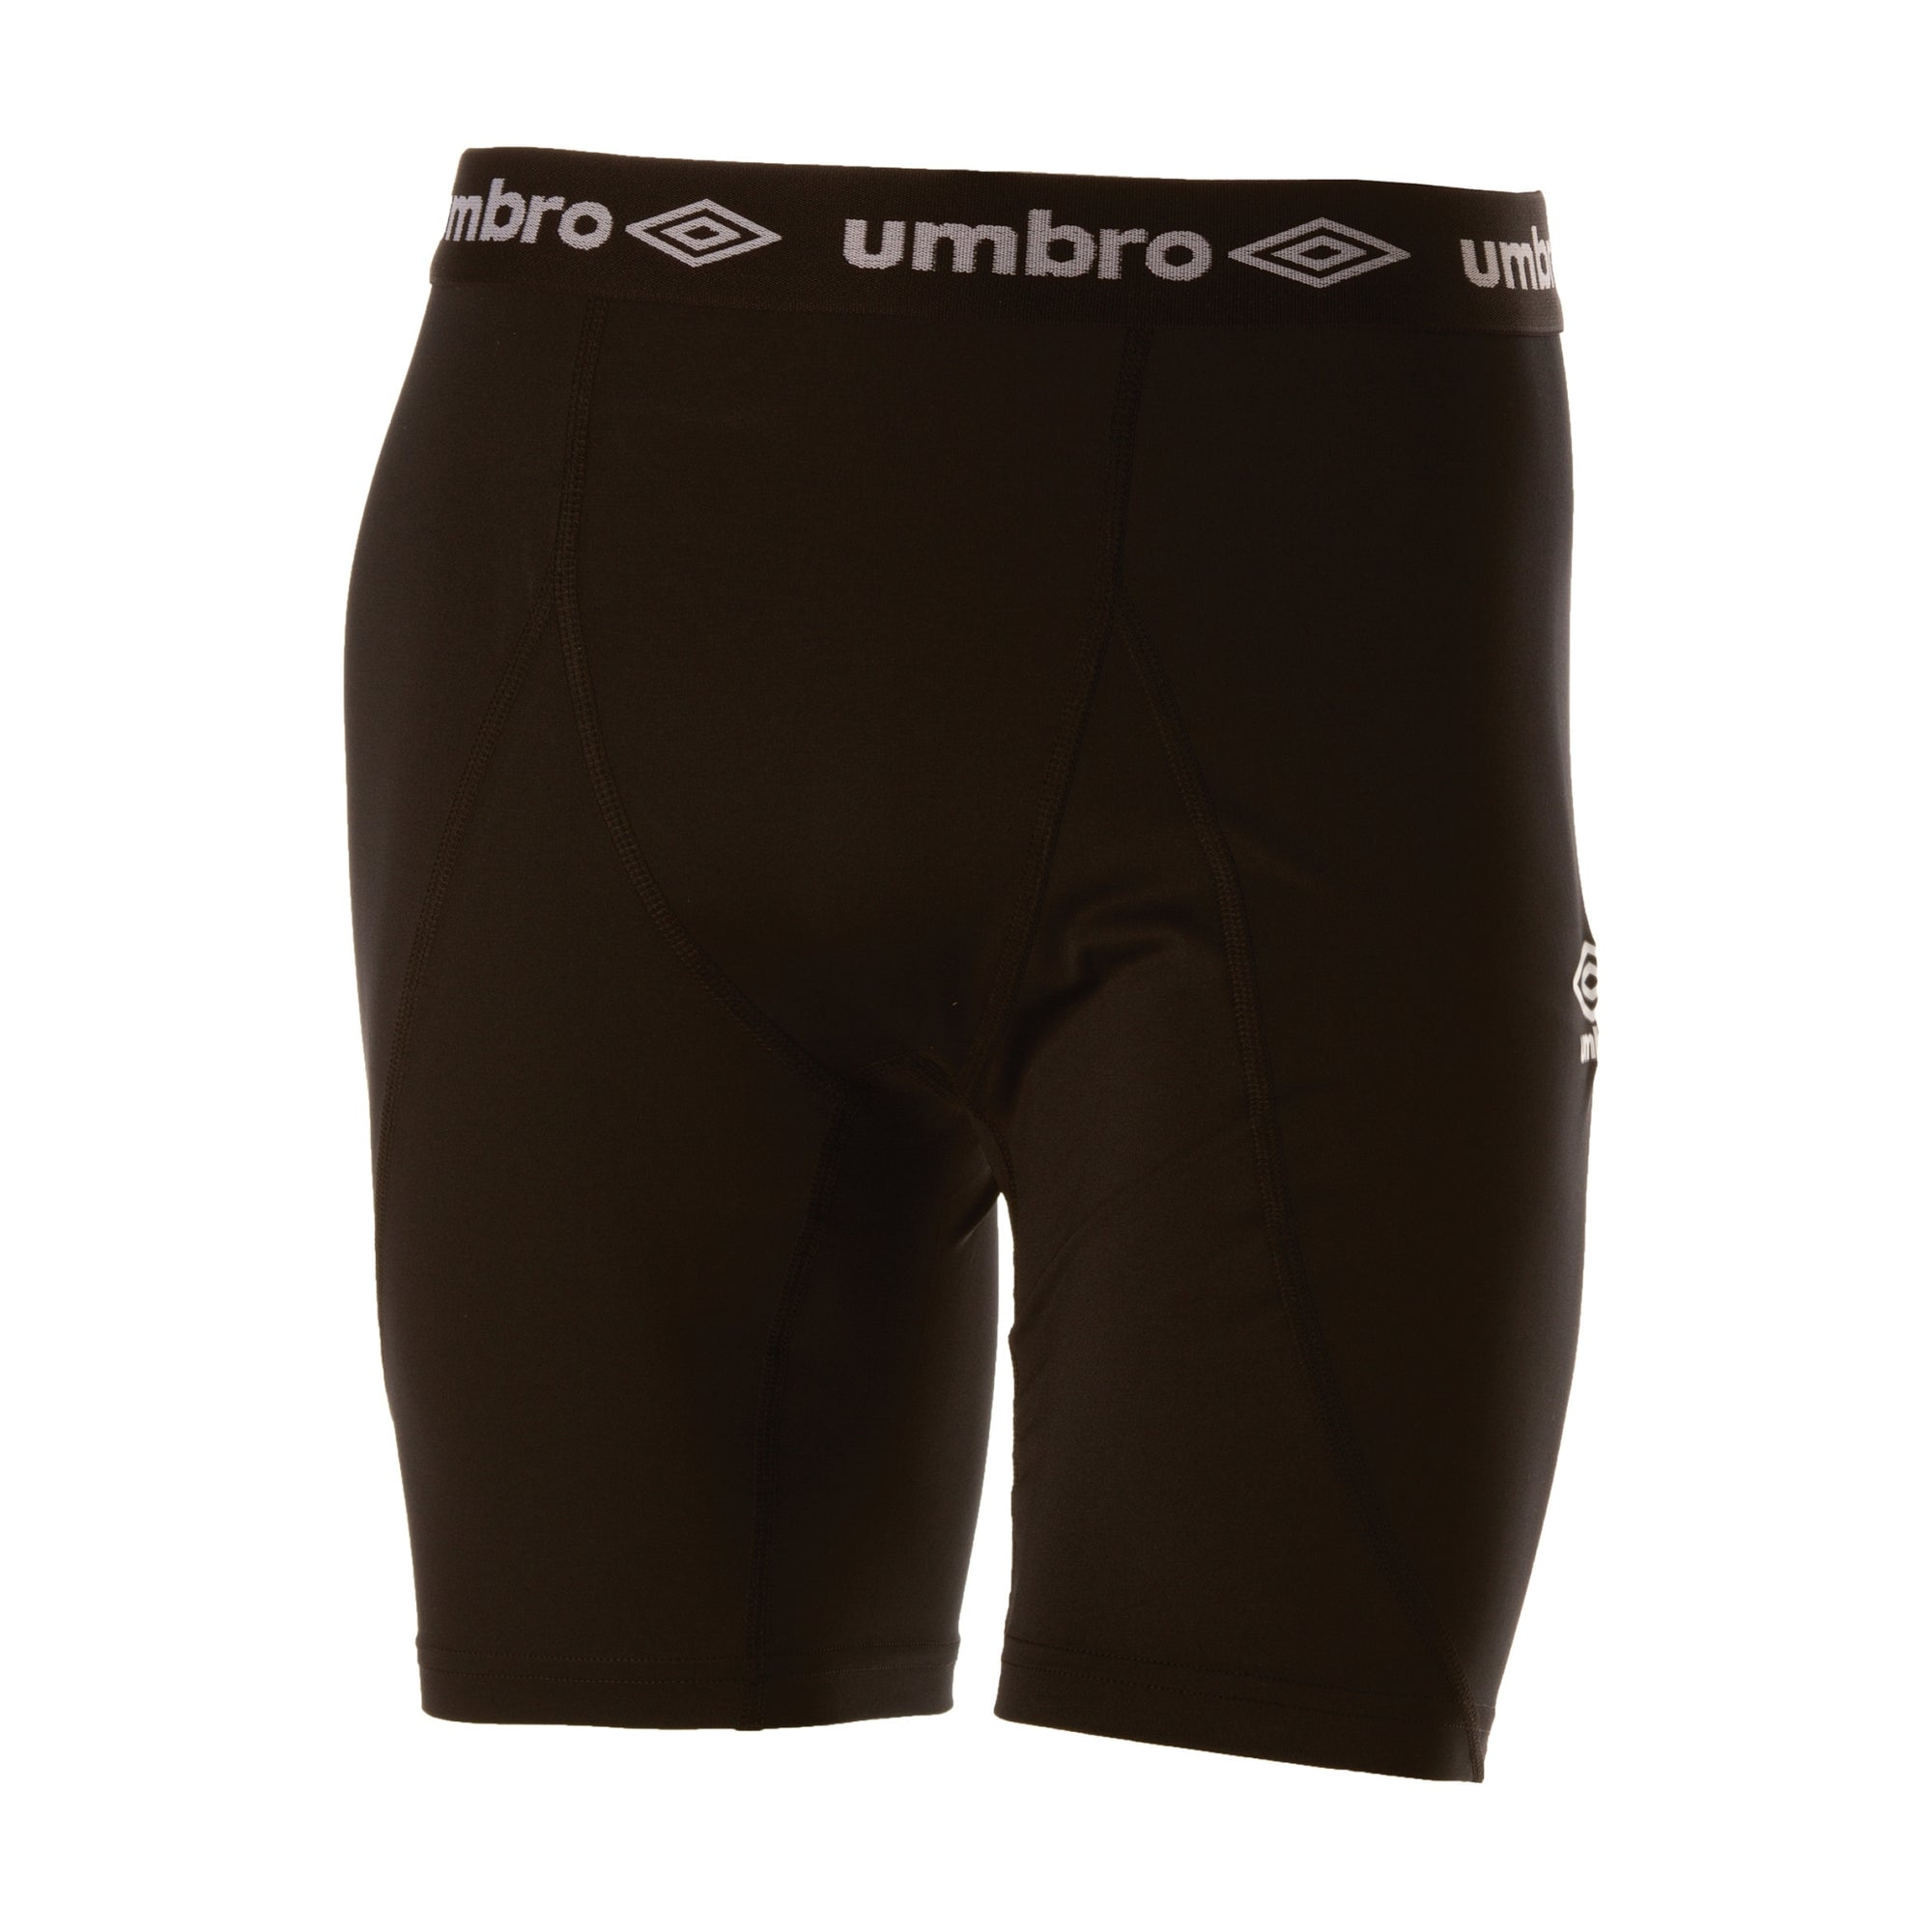 Umbro Core Power Short base layer in black